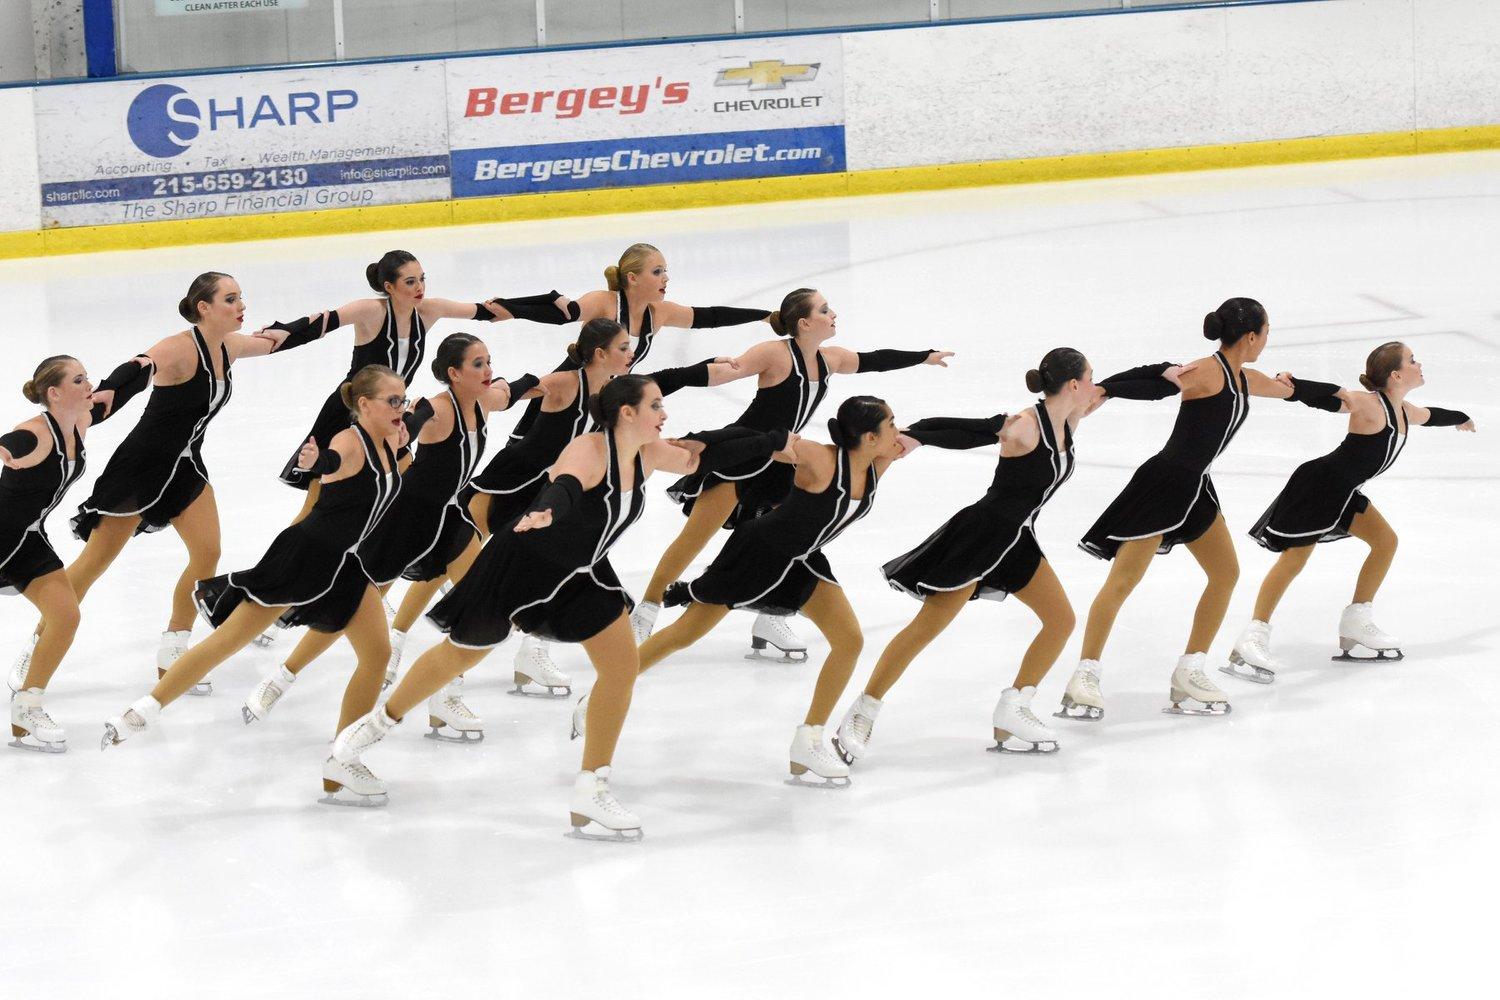 The Open Juvenile line of the IceLiners Synchronized Skating Team won First Place at the 2018 Philadelphia Synchro Invitational.